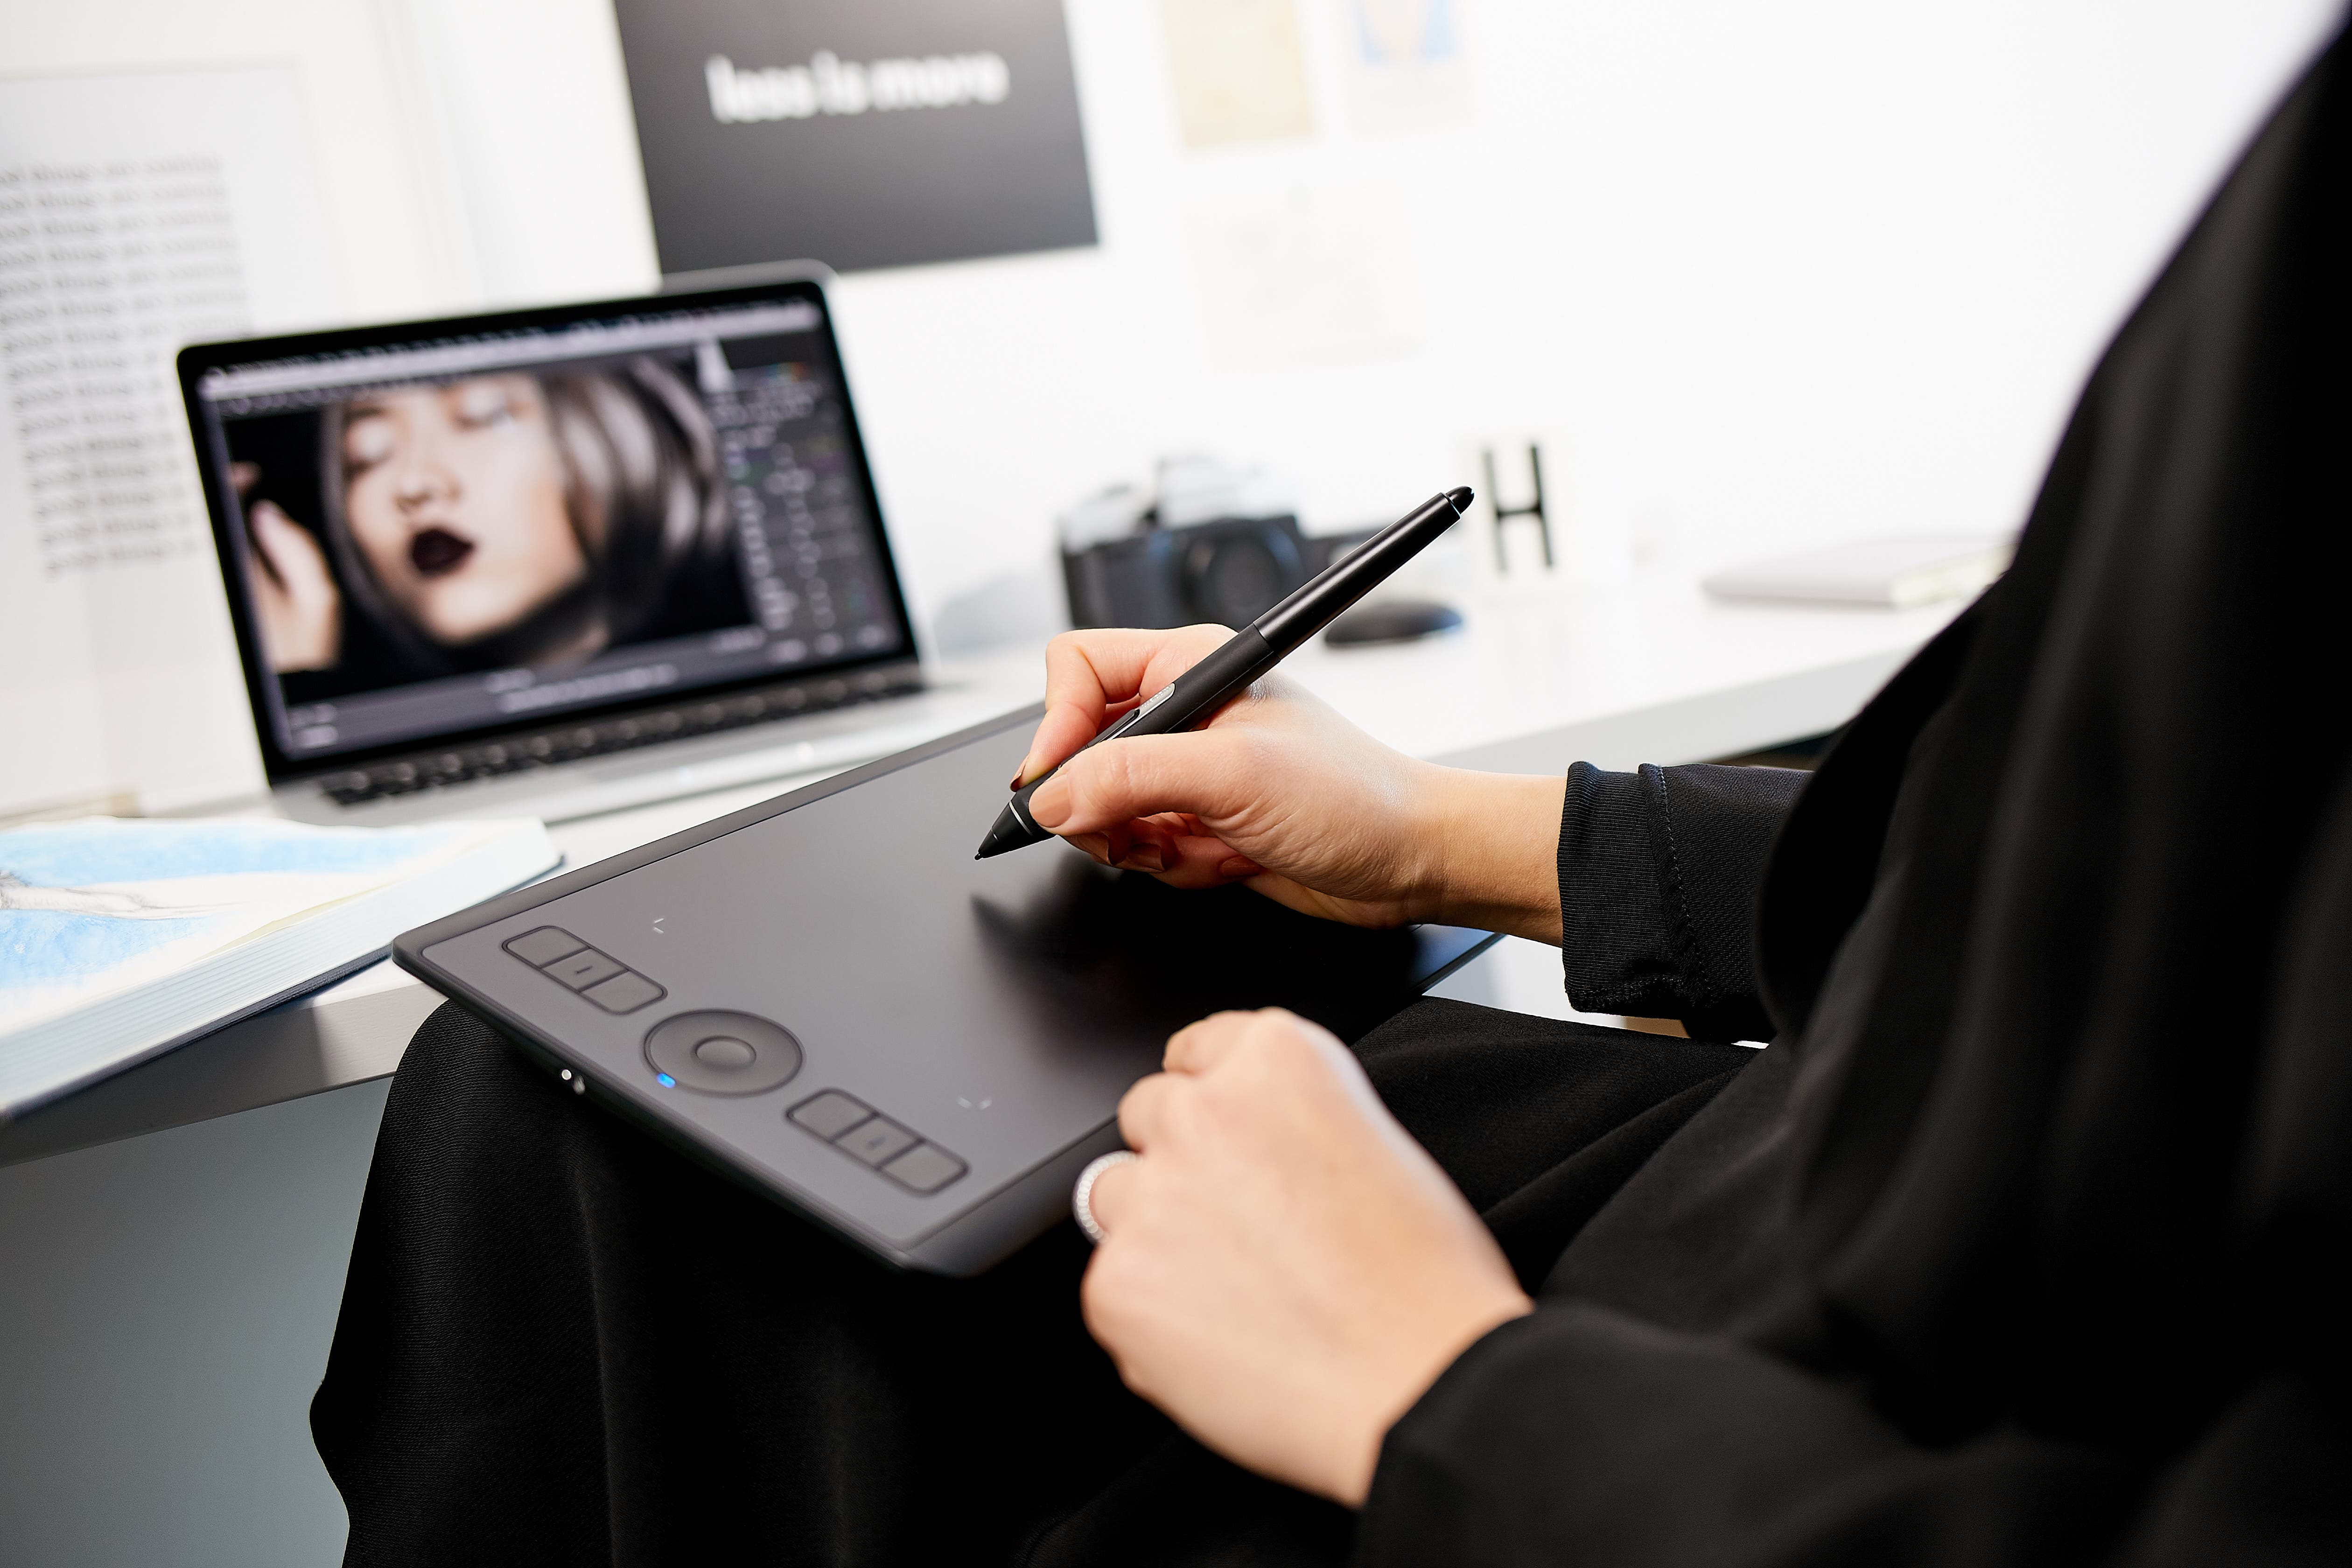 Wacom Completes Advanced Pen Tablet Series with New Intuos Pro Small